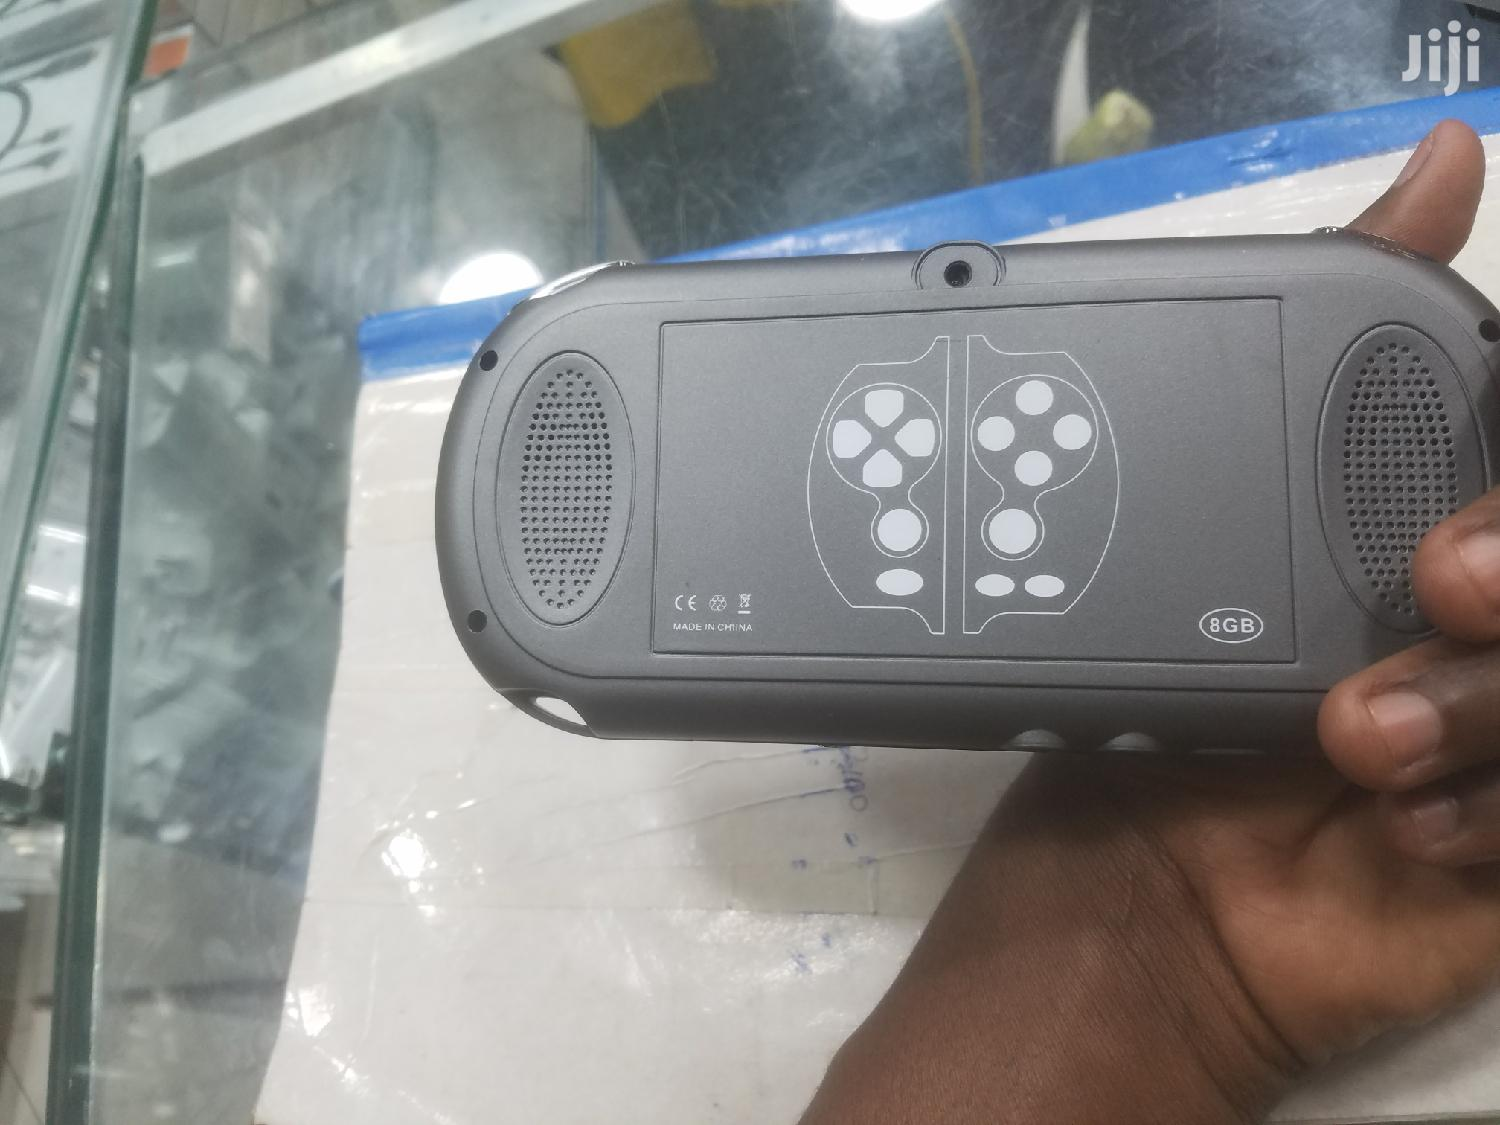 Game Console | Video Game Consoles for sale in Kampala, Central Region, Uganda